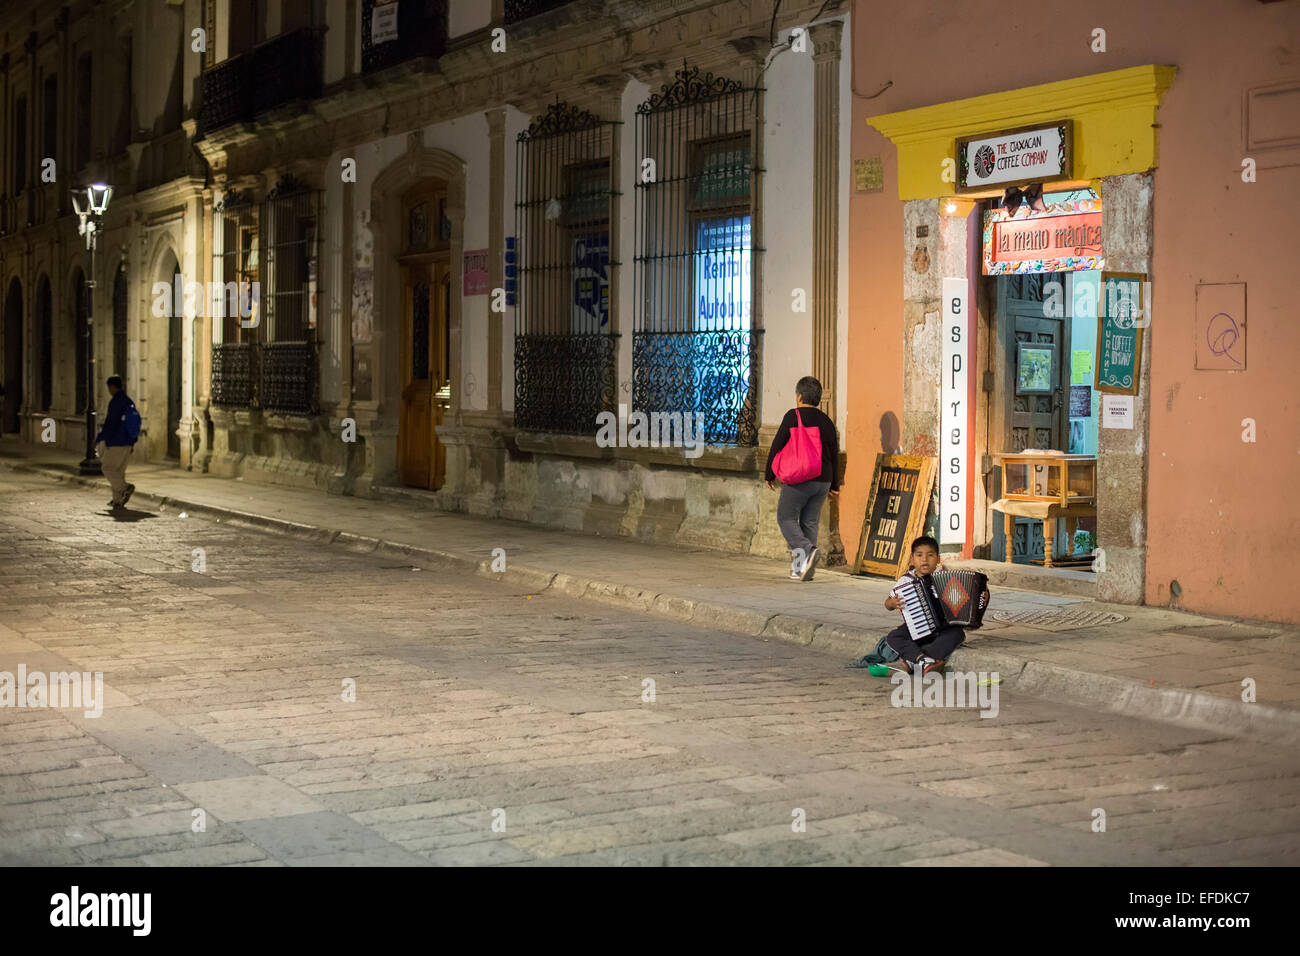 Oaxaca, Mexico - A seven-year-old boy plays the accordion and sings for tips on the street. - Stock Image